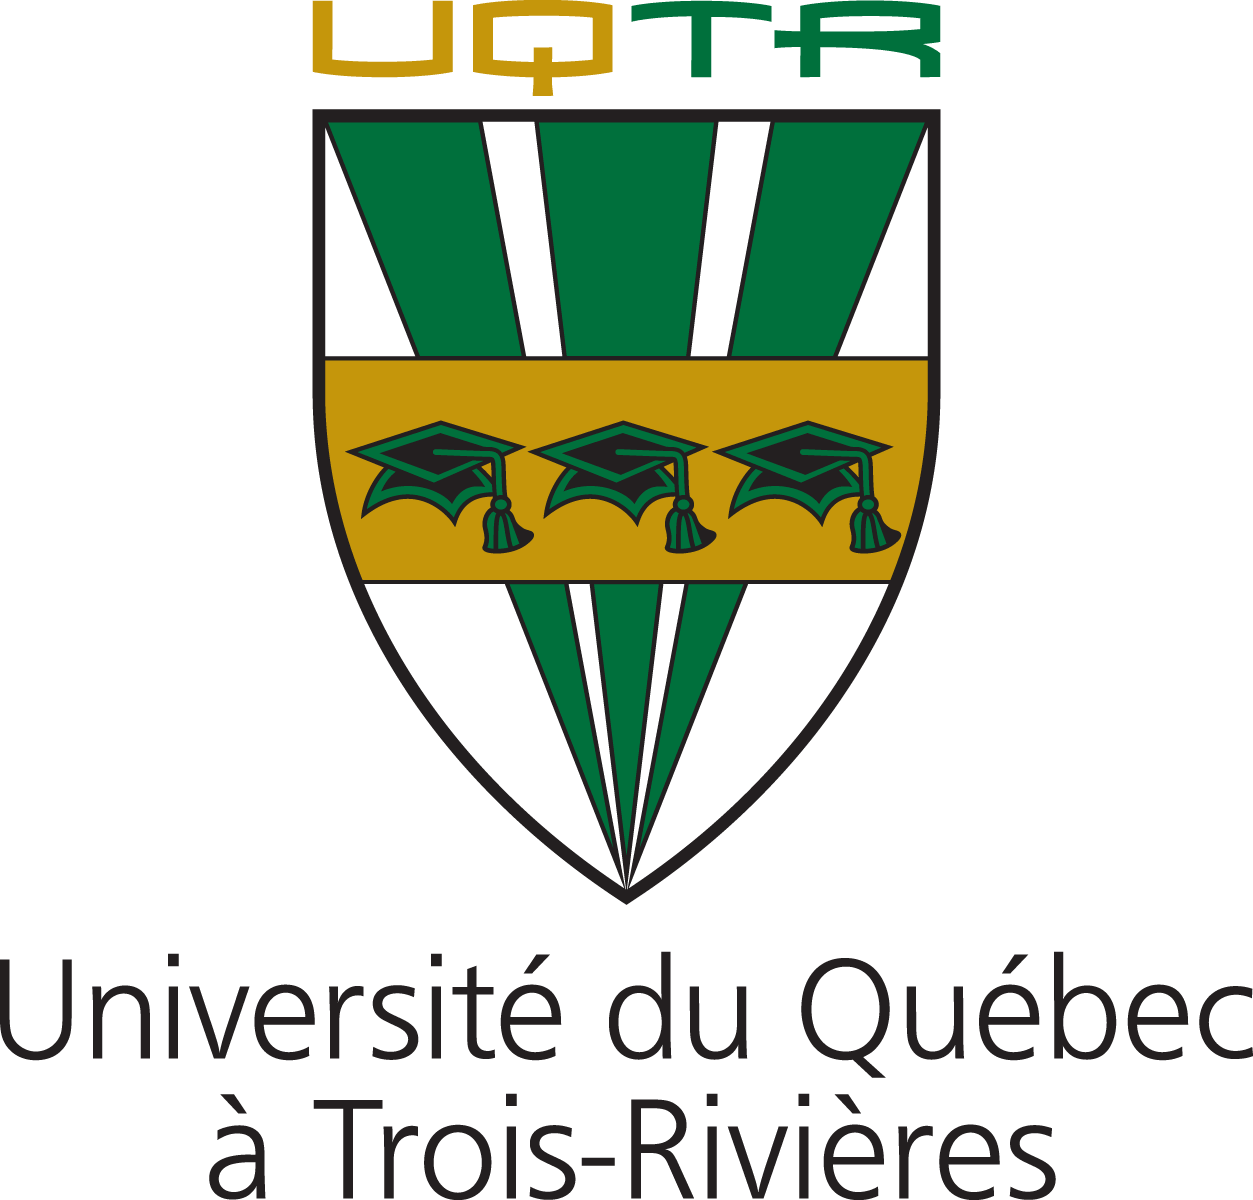 University of Quebec at Trois-Rivières